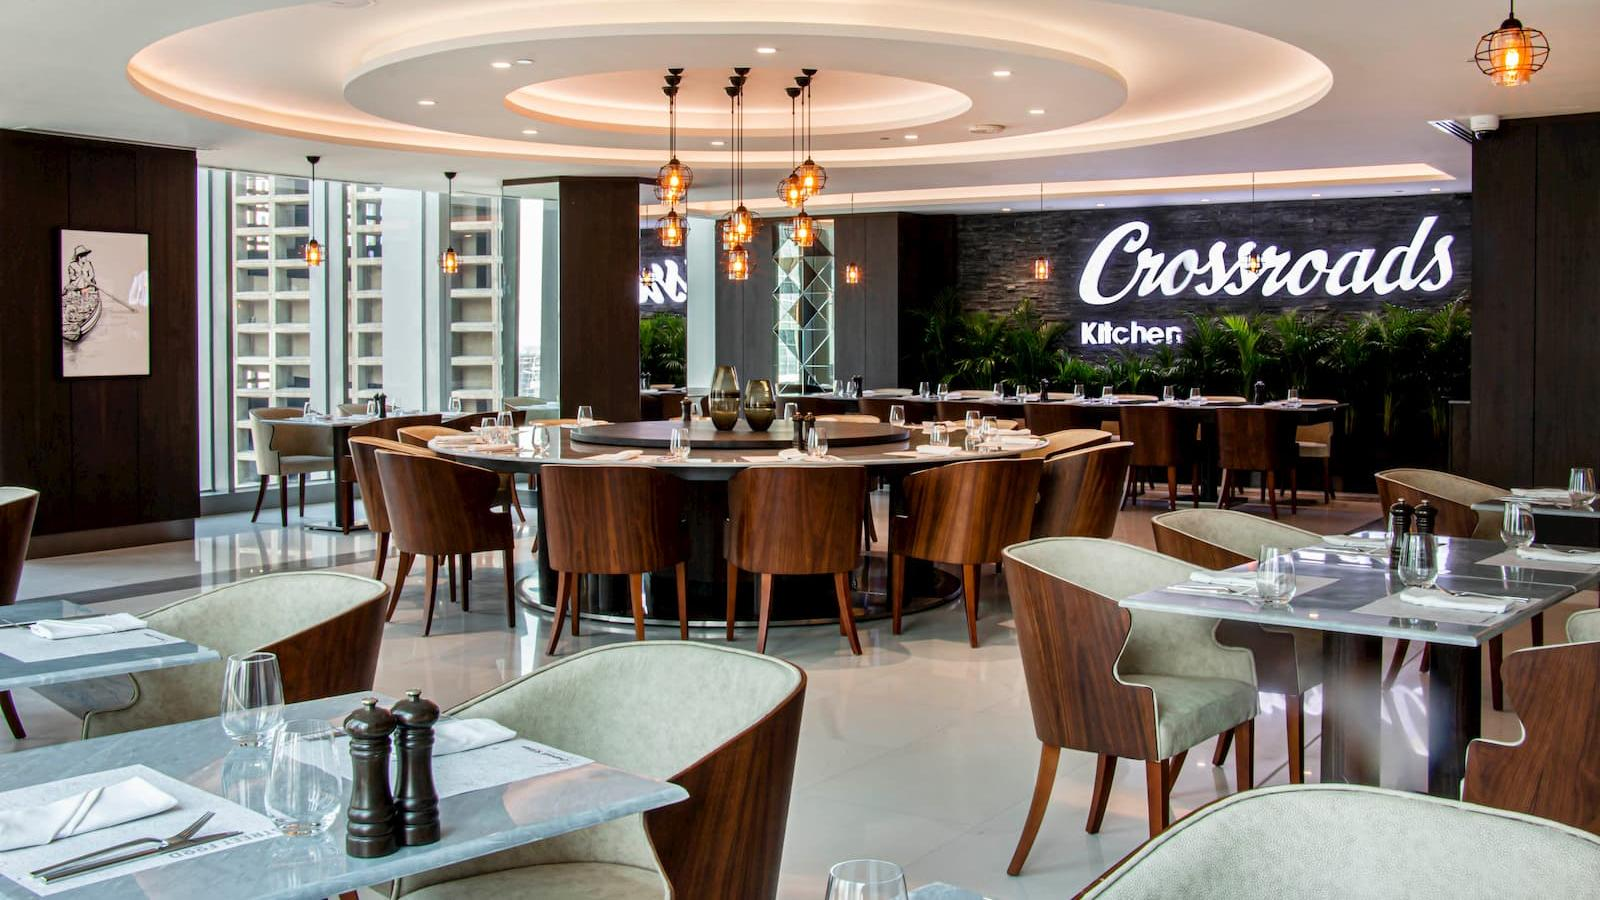 Crossroads Kitchen at Marriott Marquis City Center opens with new 'street food' concept